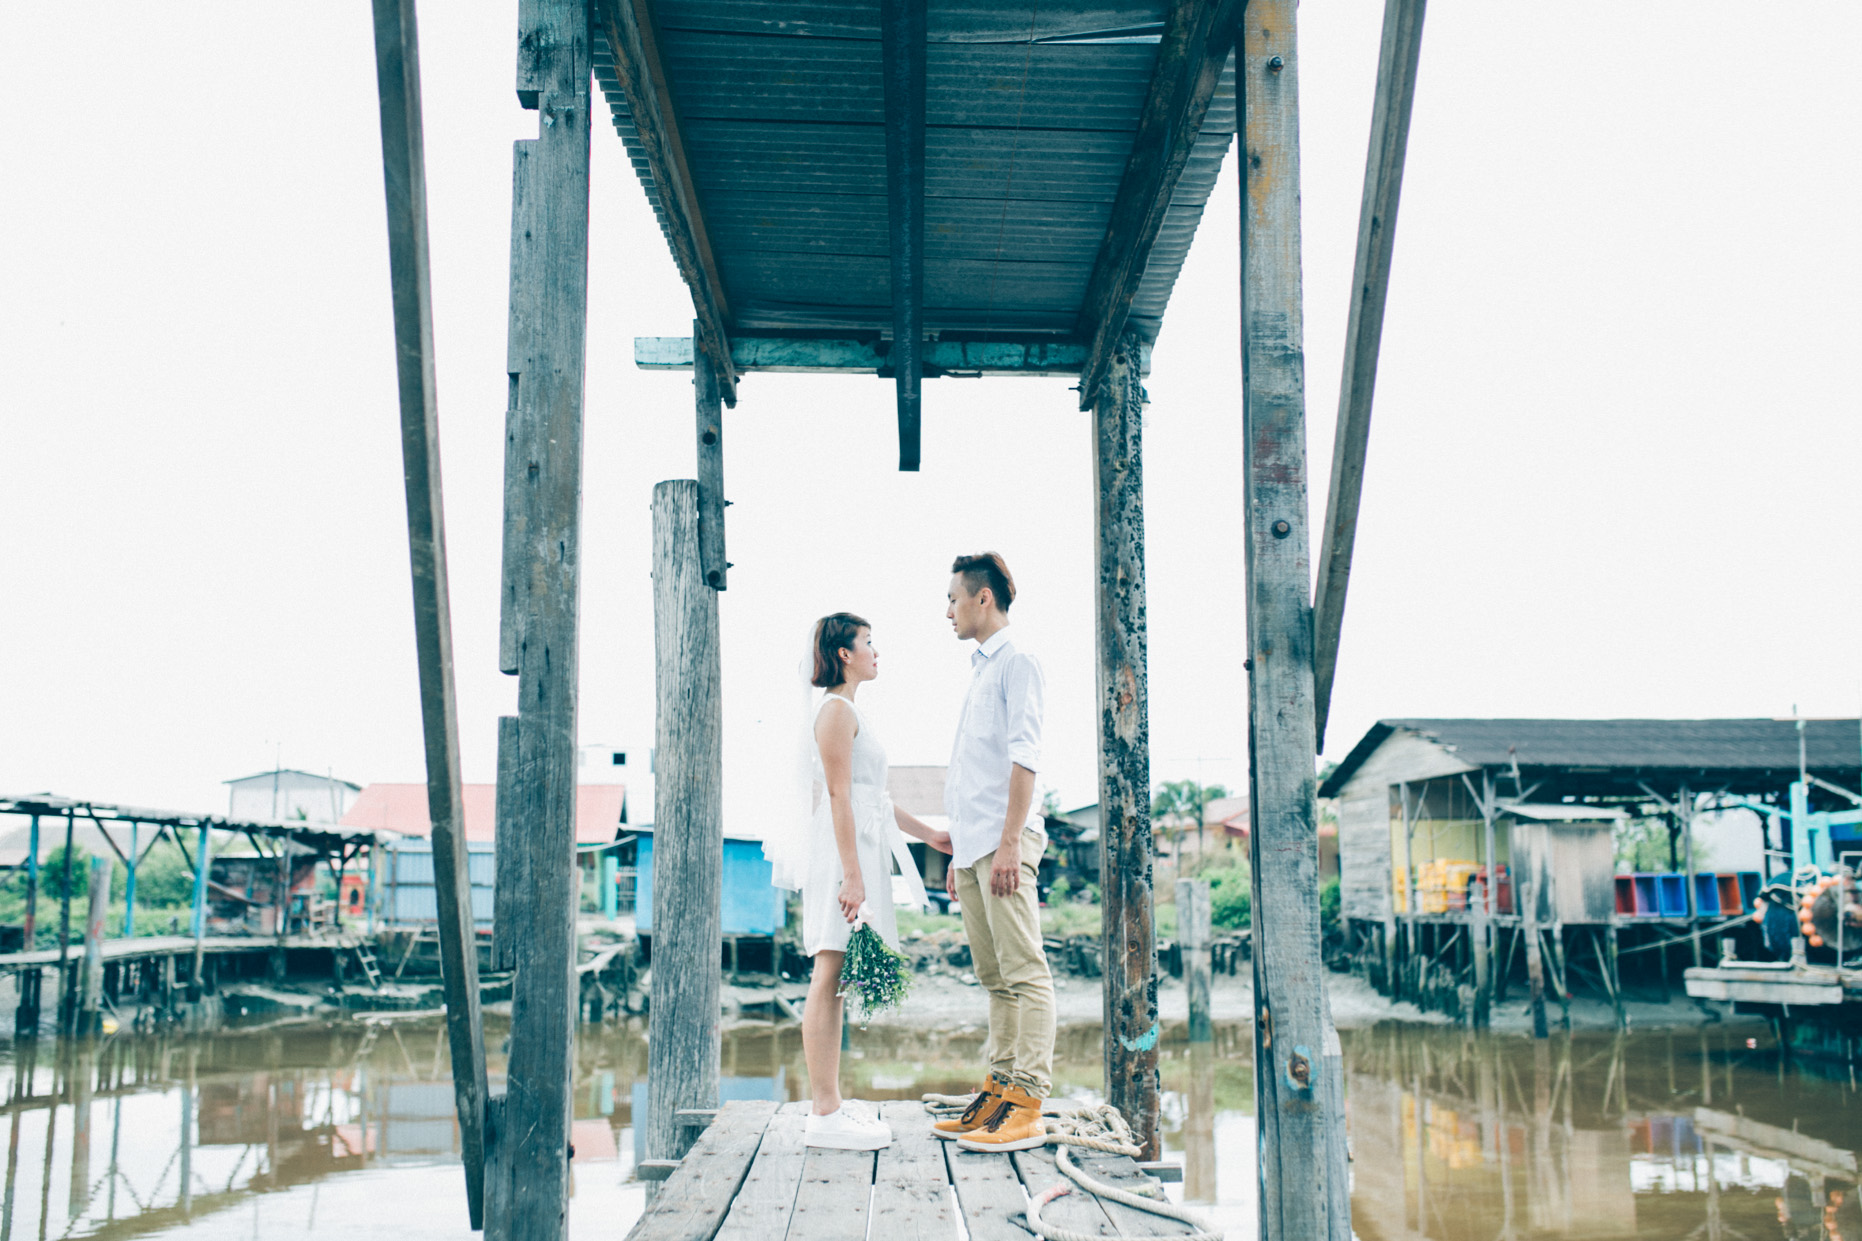 49-hellojanelee-singapore-malaysia-wedding-photographer-prewedding-carrie-sekinchan